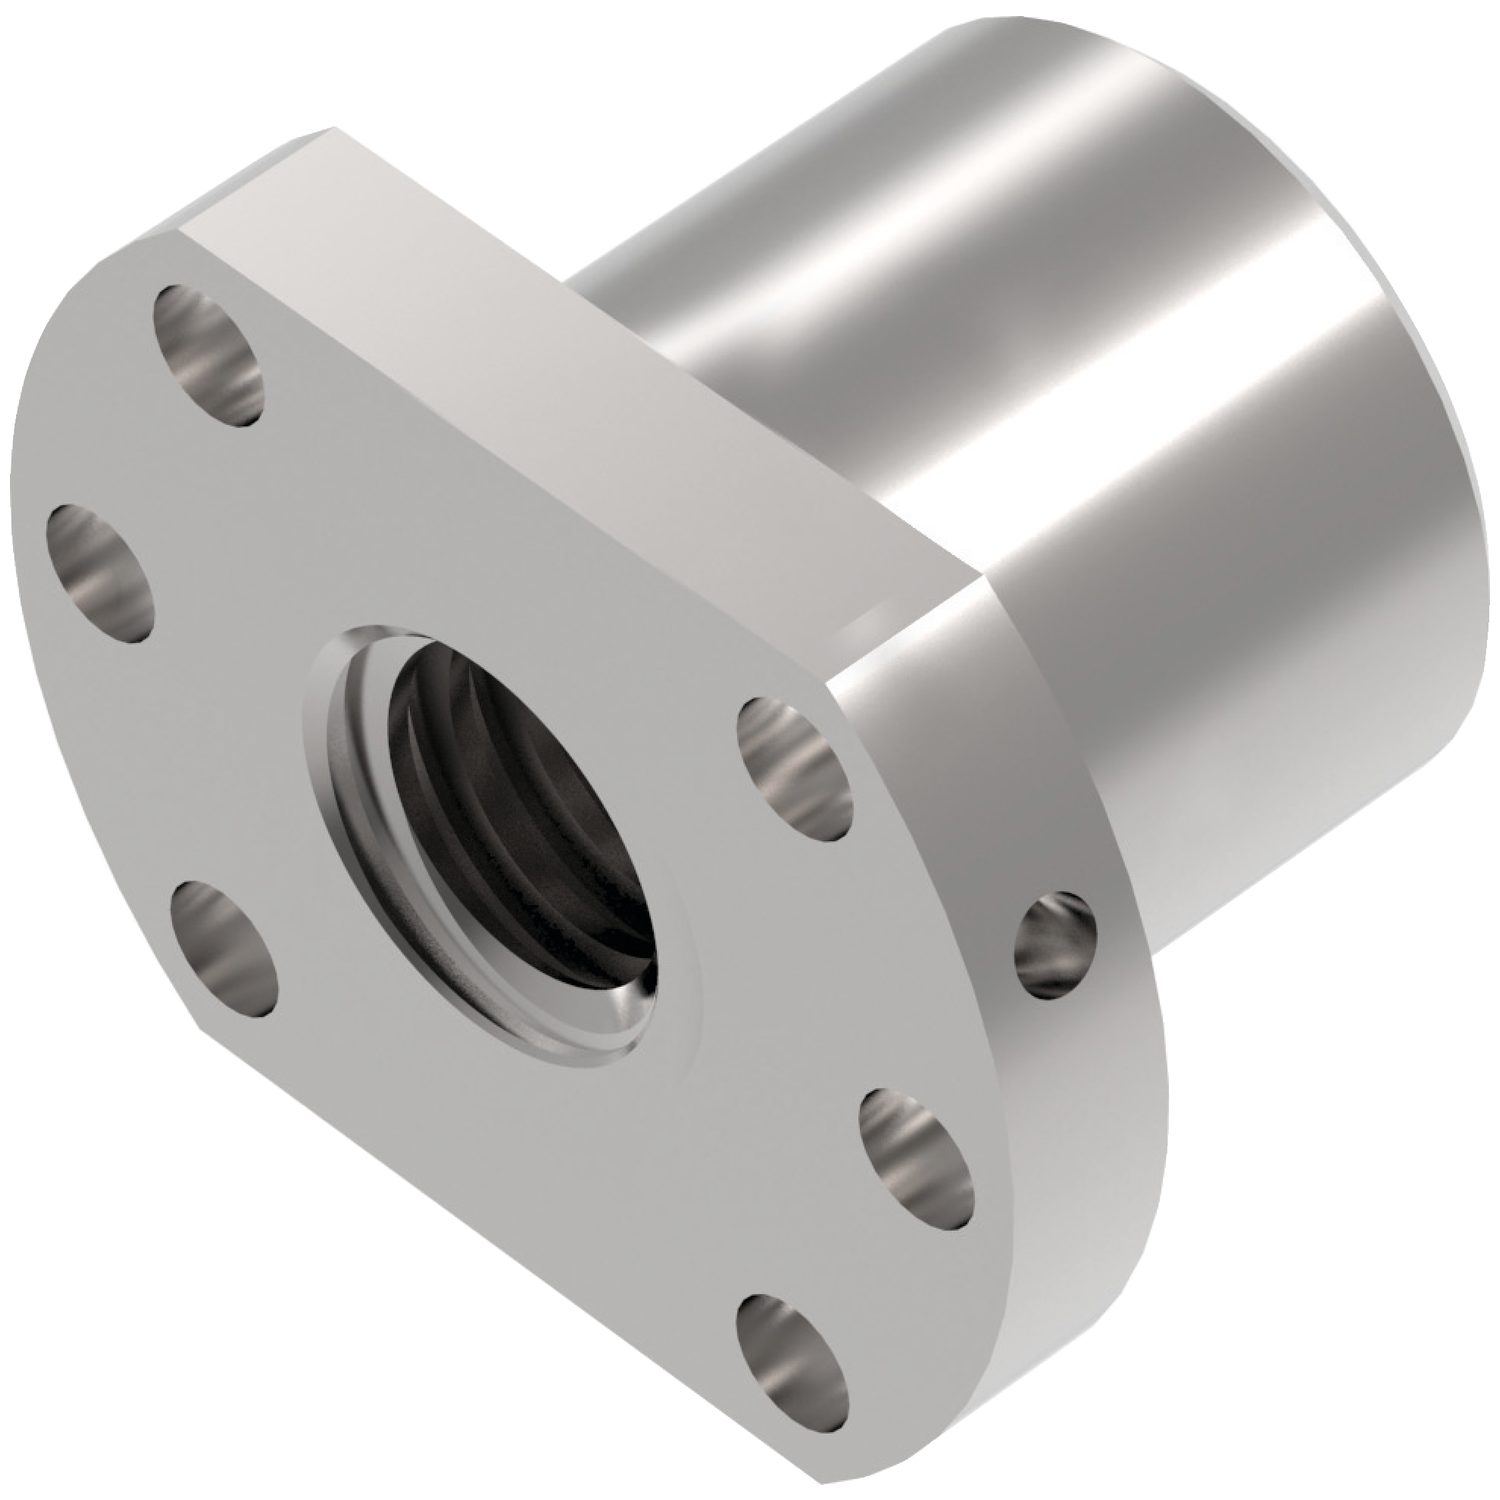 Product L1386.S, Single Flanged Ball Nuts to DIN 69051 /